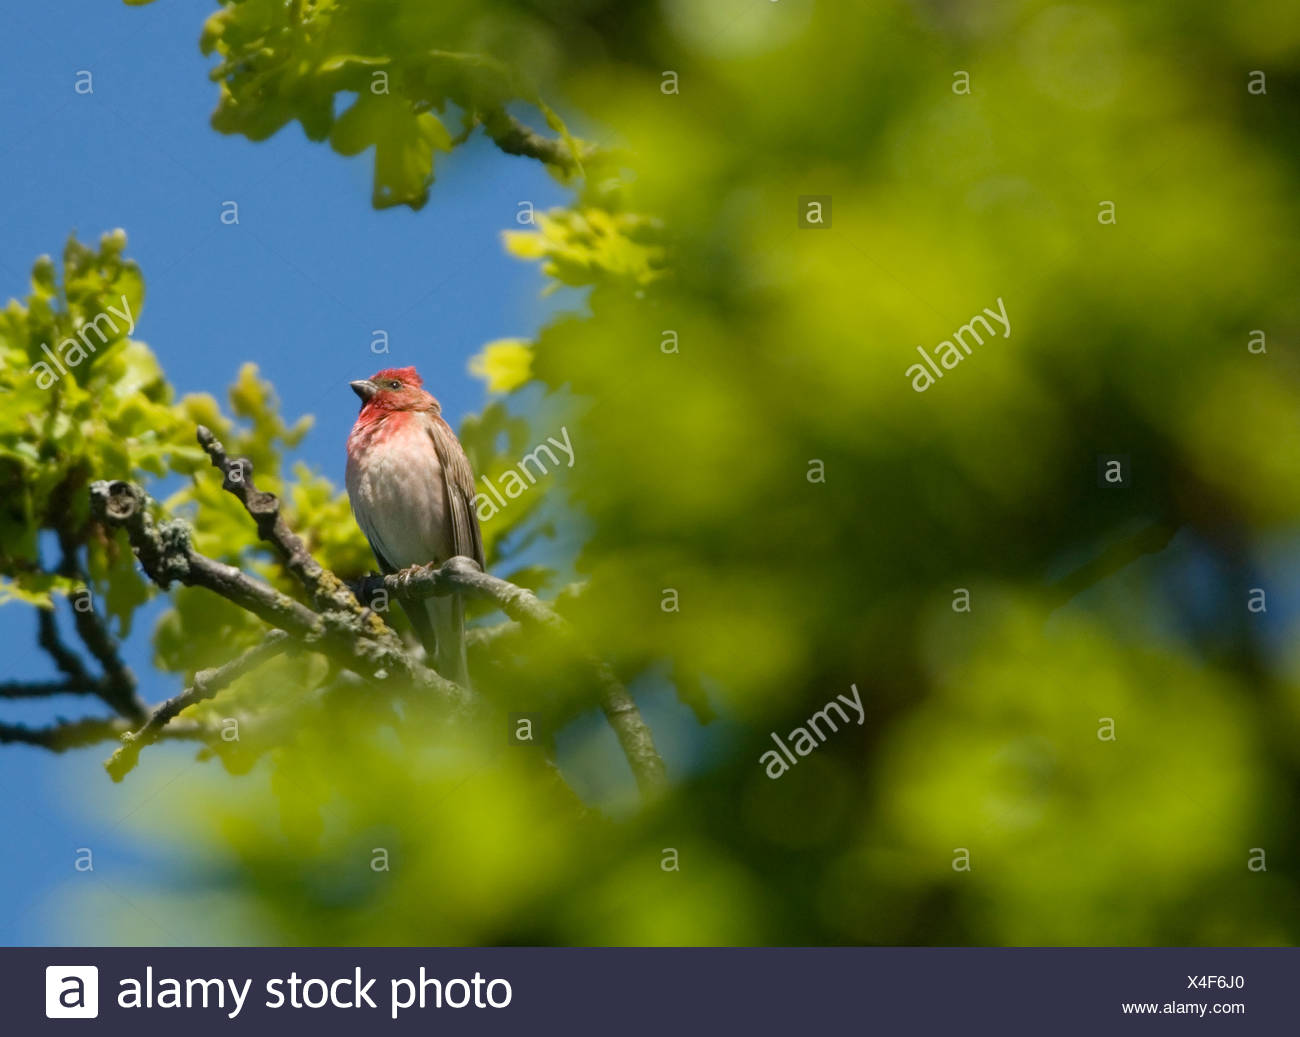 A scarlet rosefinch in a tree, Sweden. - Stock Image